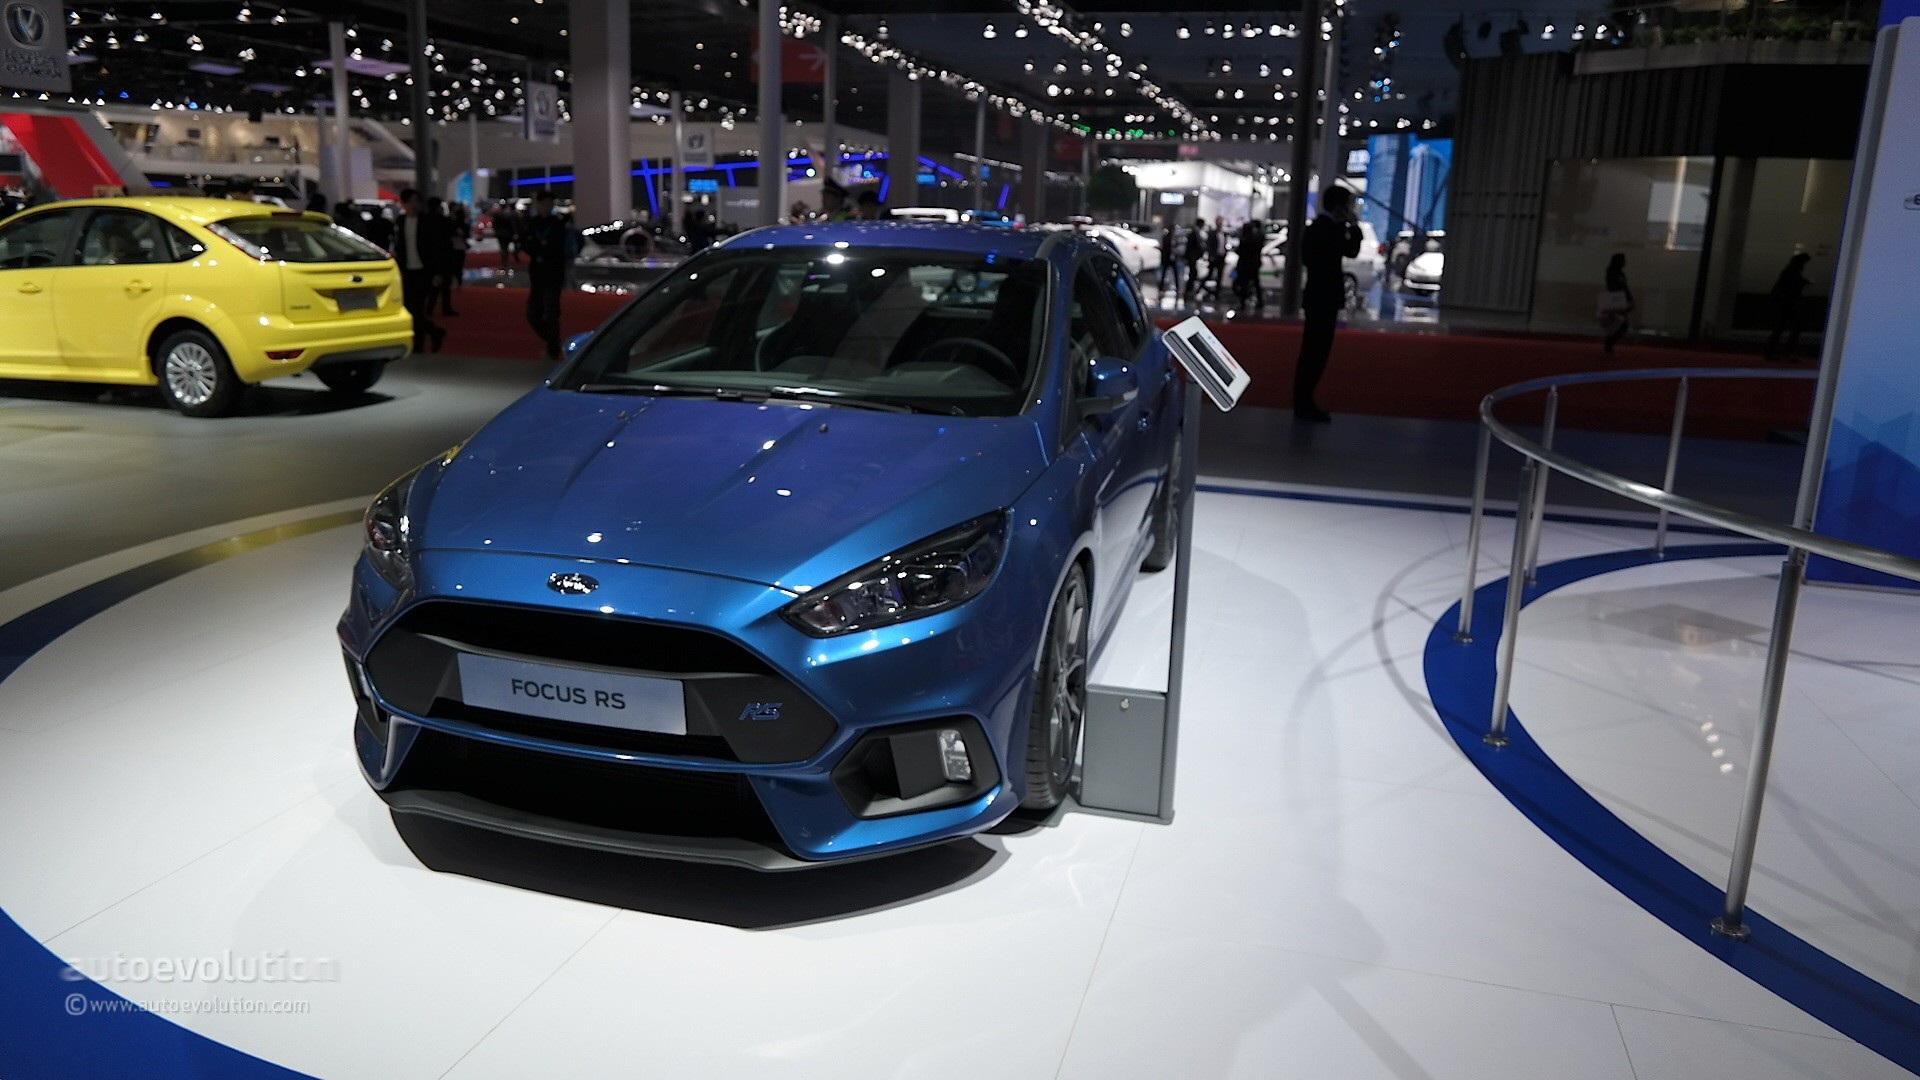 2016 ford focus rs arriving in china via the shanghai auto. Black Bedroom Furniture Sets. Home Design Ideas